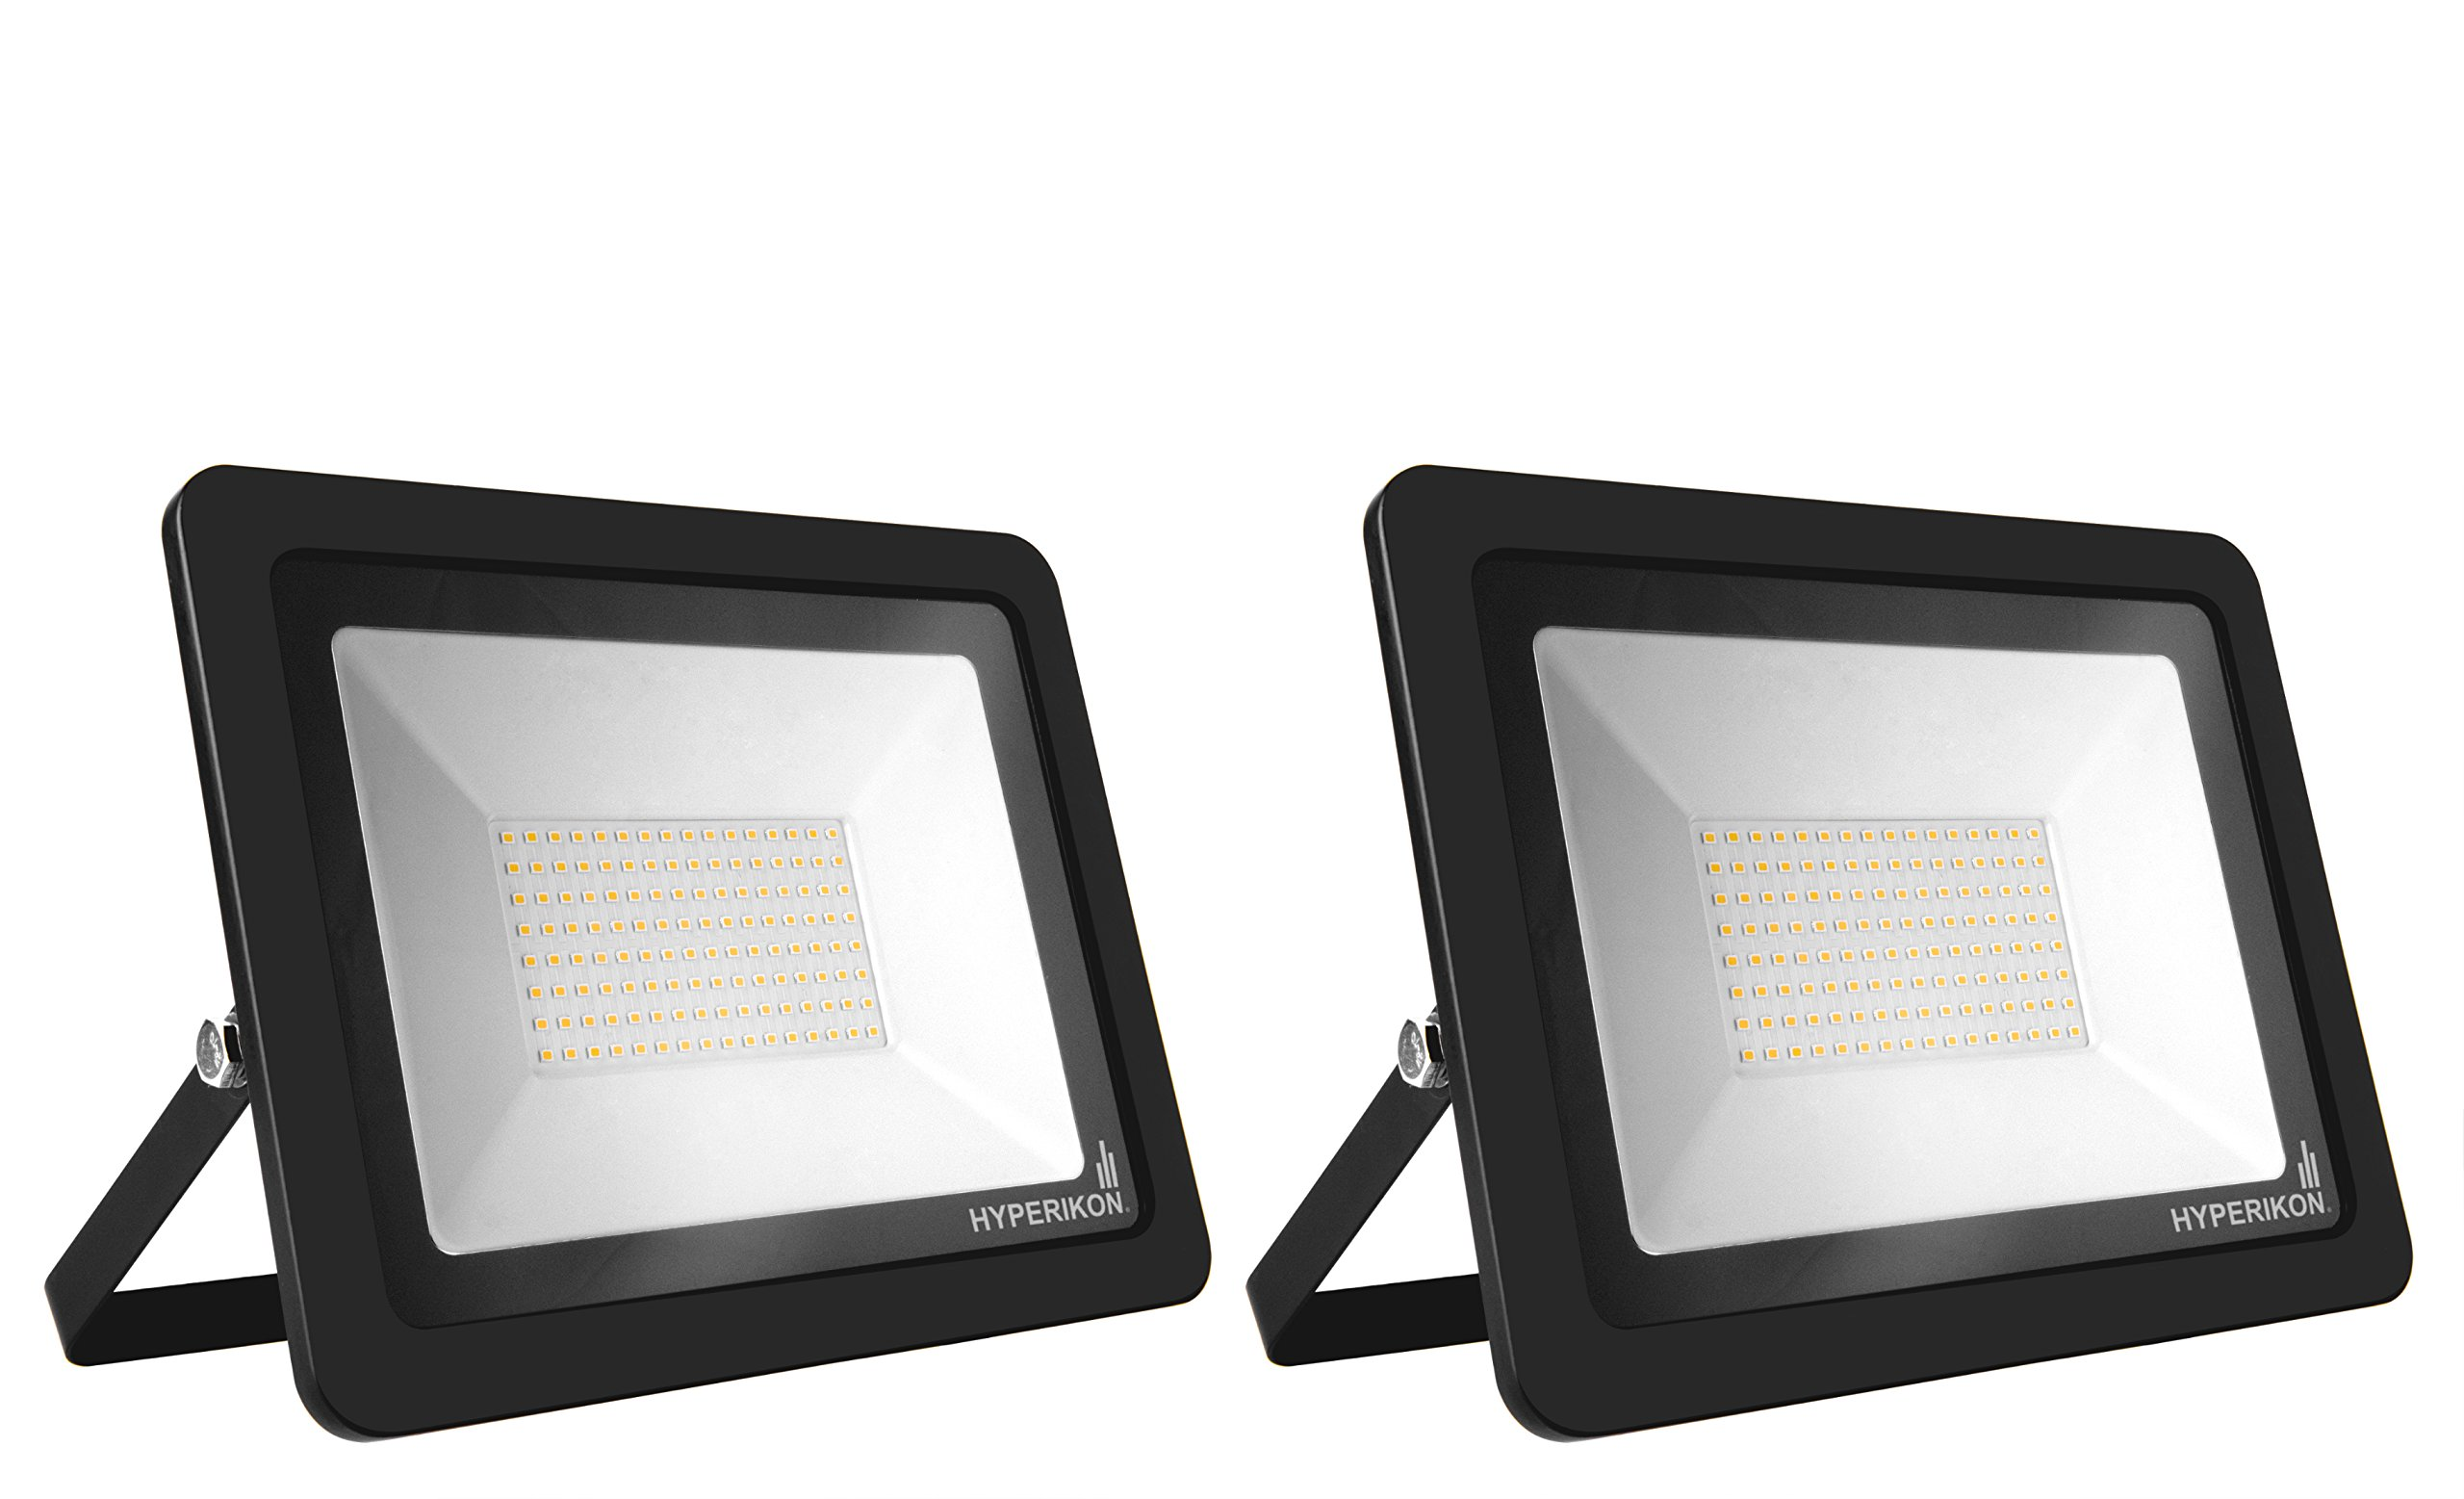 Hyperikon LED Flood Light 200W (1000 Watt Eq.) 180° Rotatable Bracket, 5000k,16000 Lm, Super Bright Outdoor LED Floodlight, Weatherproof IP65, Suitable for Dry and Damp Locations, 110V, 2-Pack